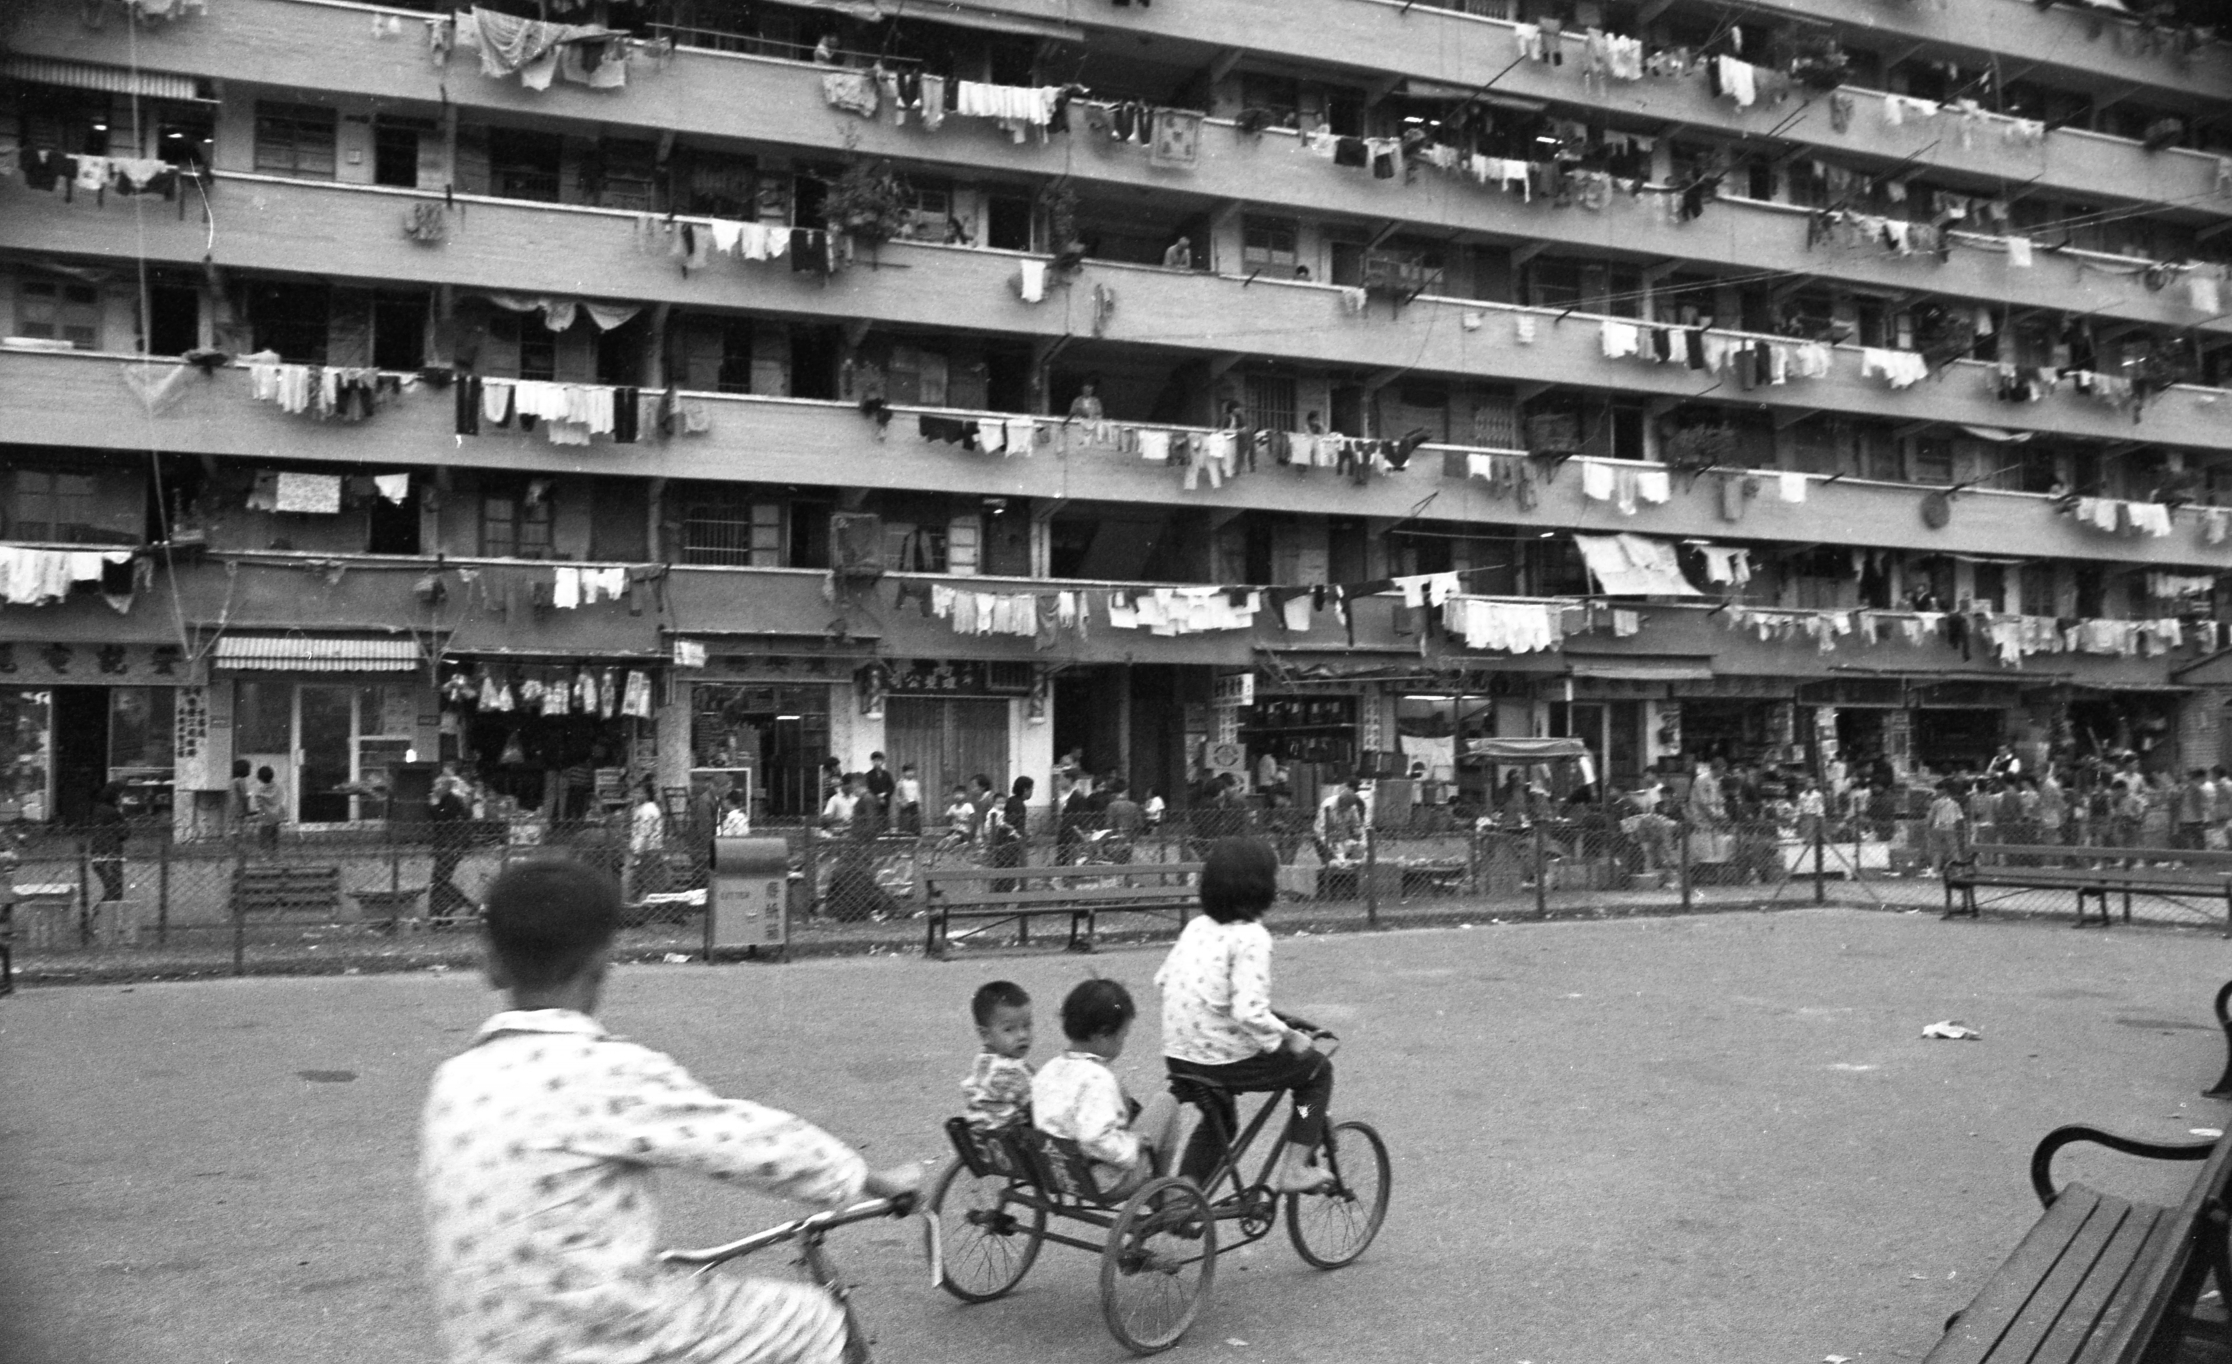 EXCLUSIVELY FEATURED BY EASTPRO - hong kong 1969 - chaiwan public housing estate - kids riding tricycle